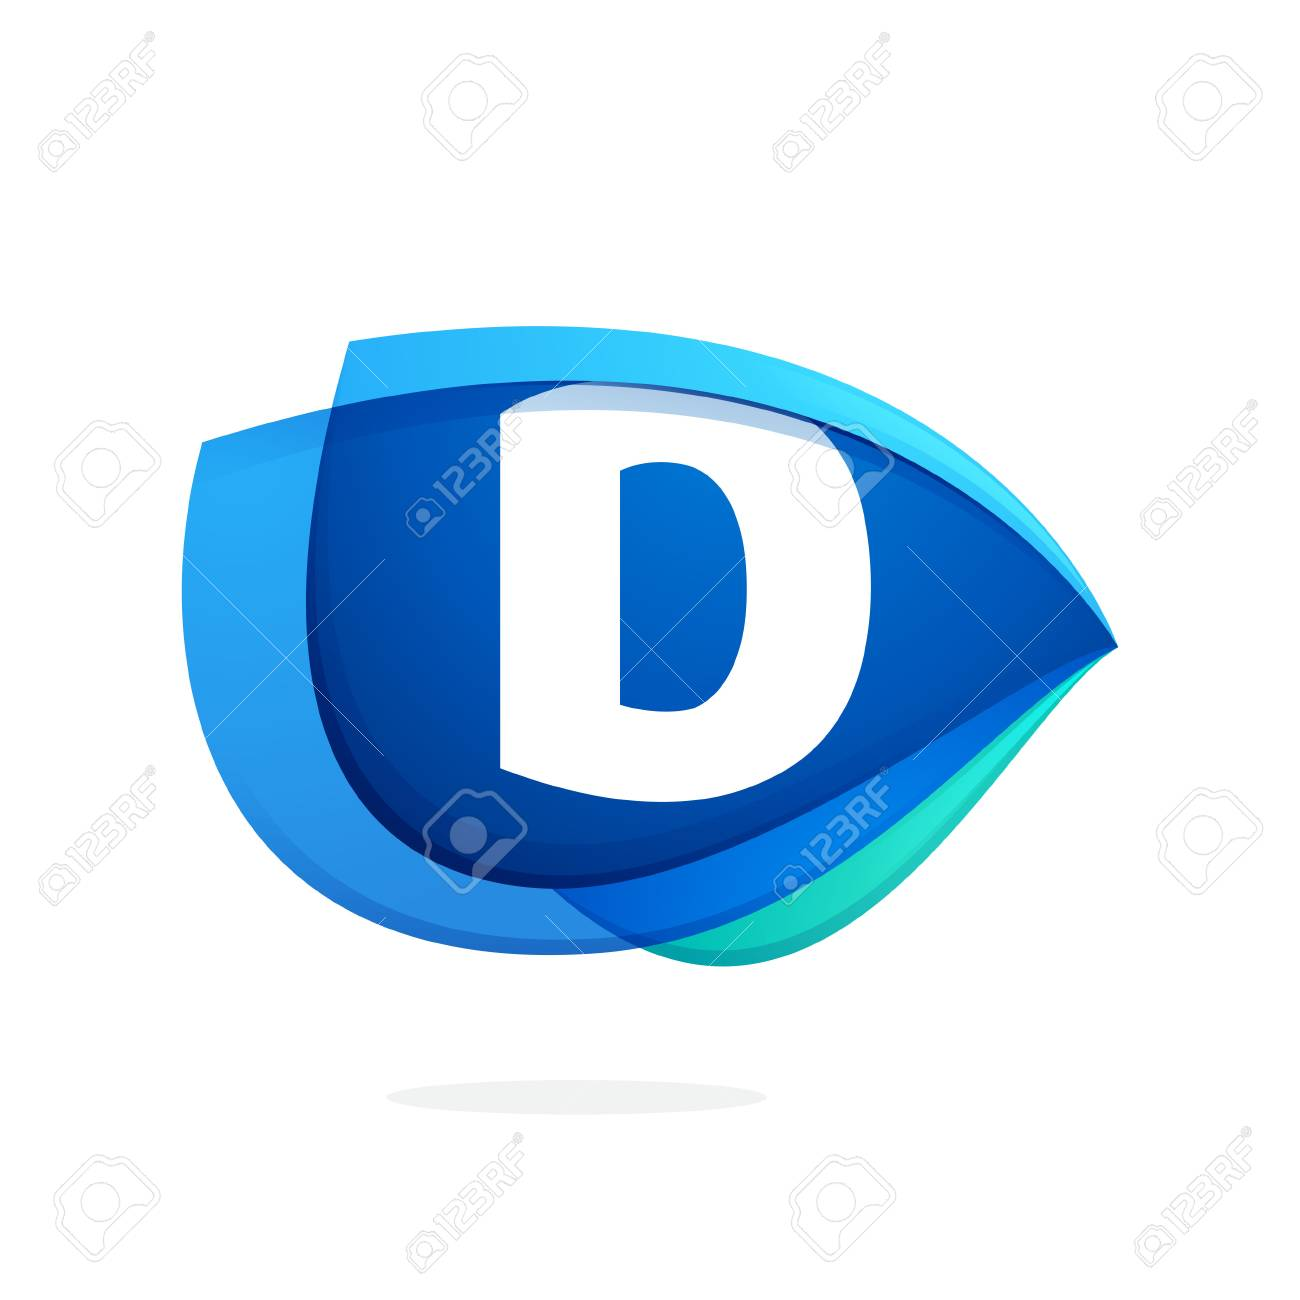 D letter logo with blue wing or eye. Abstract trendy letter multicolored vector design template elements for your application or corporate identity. - 96890218